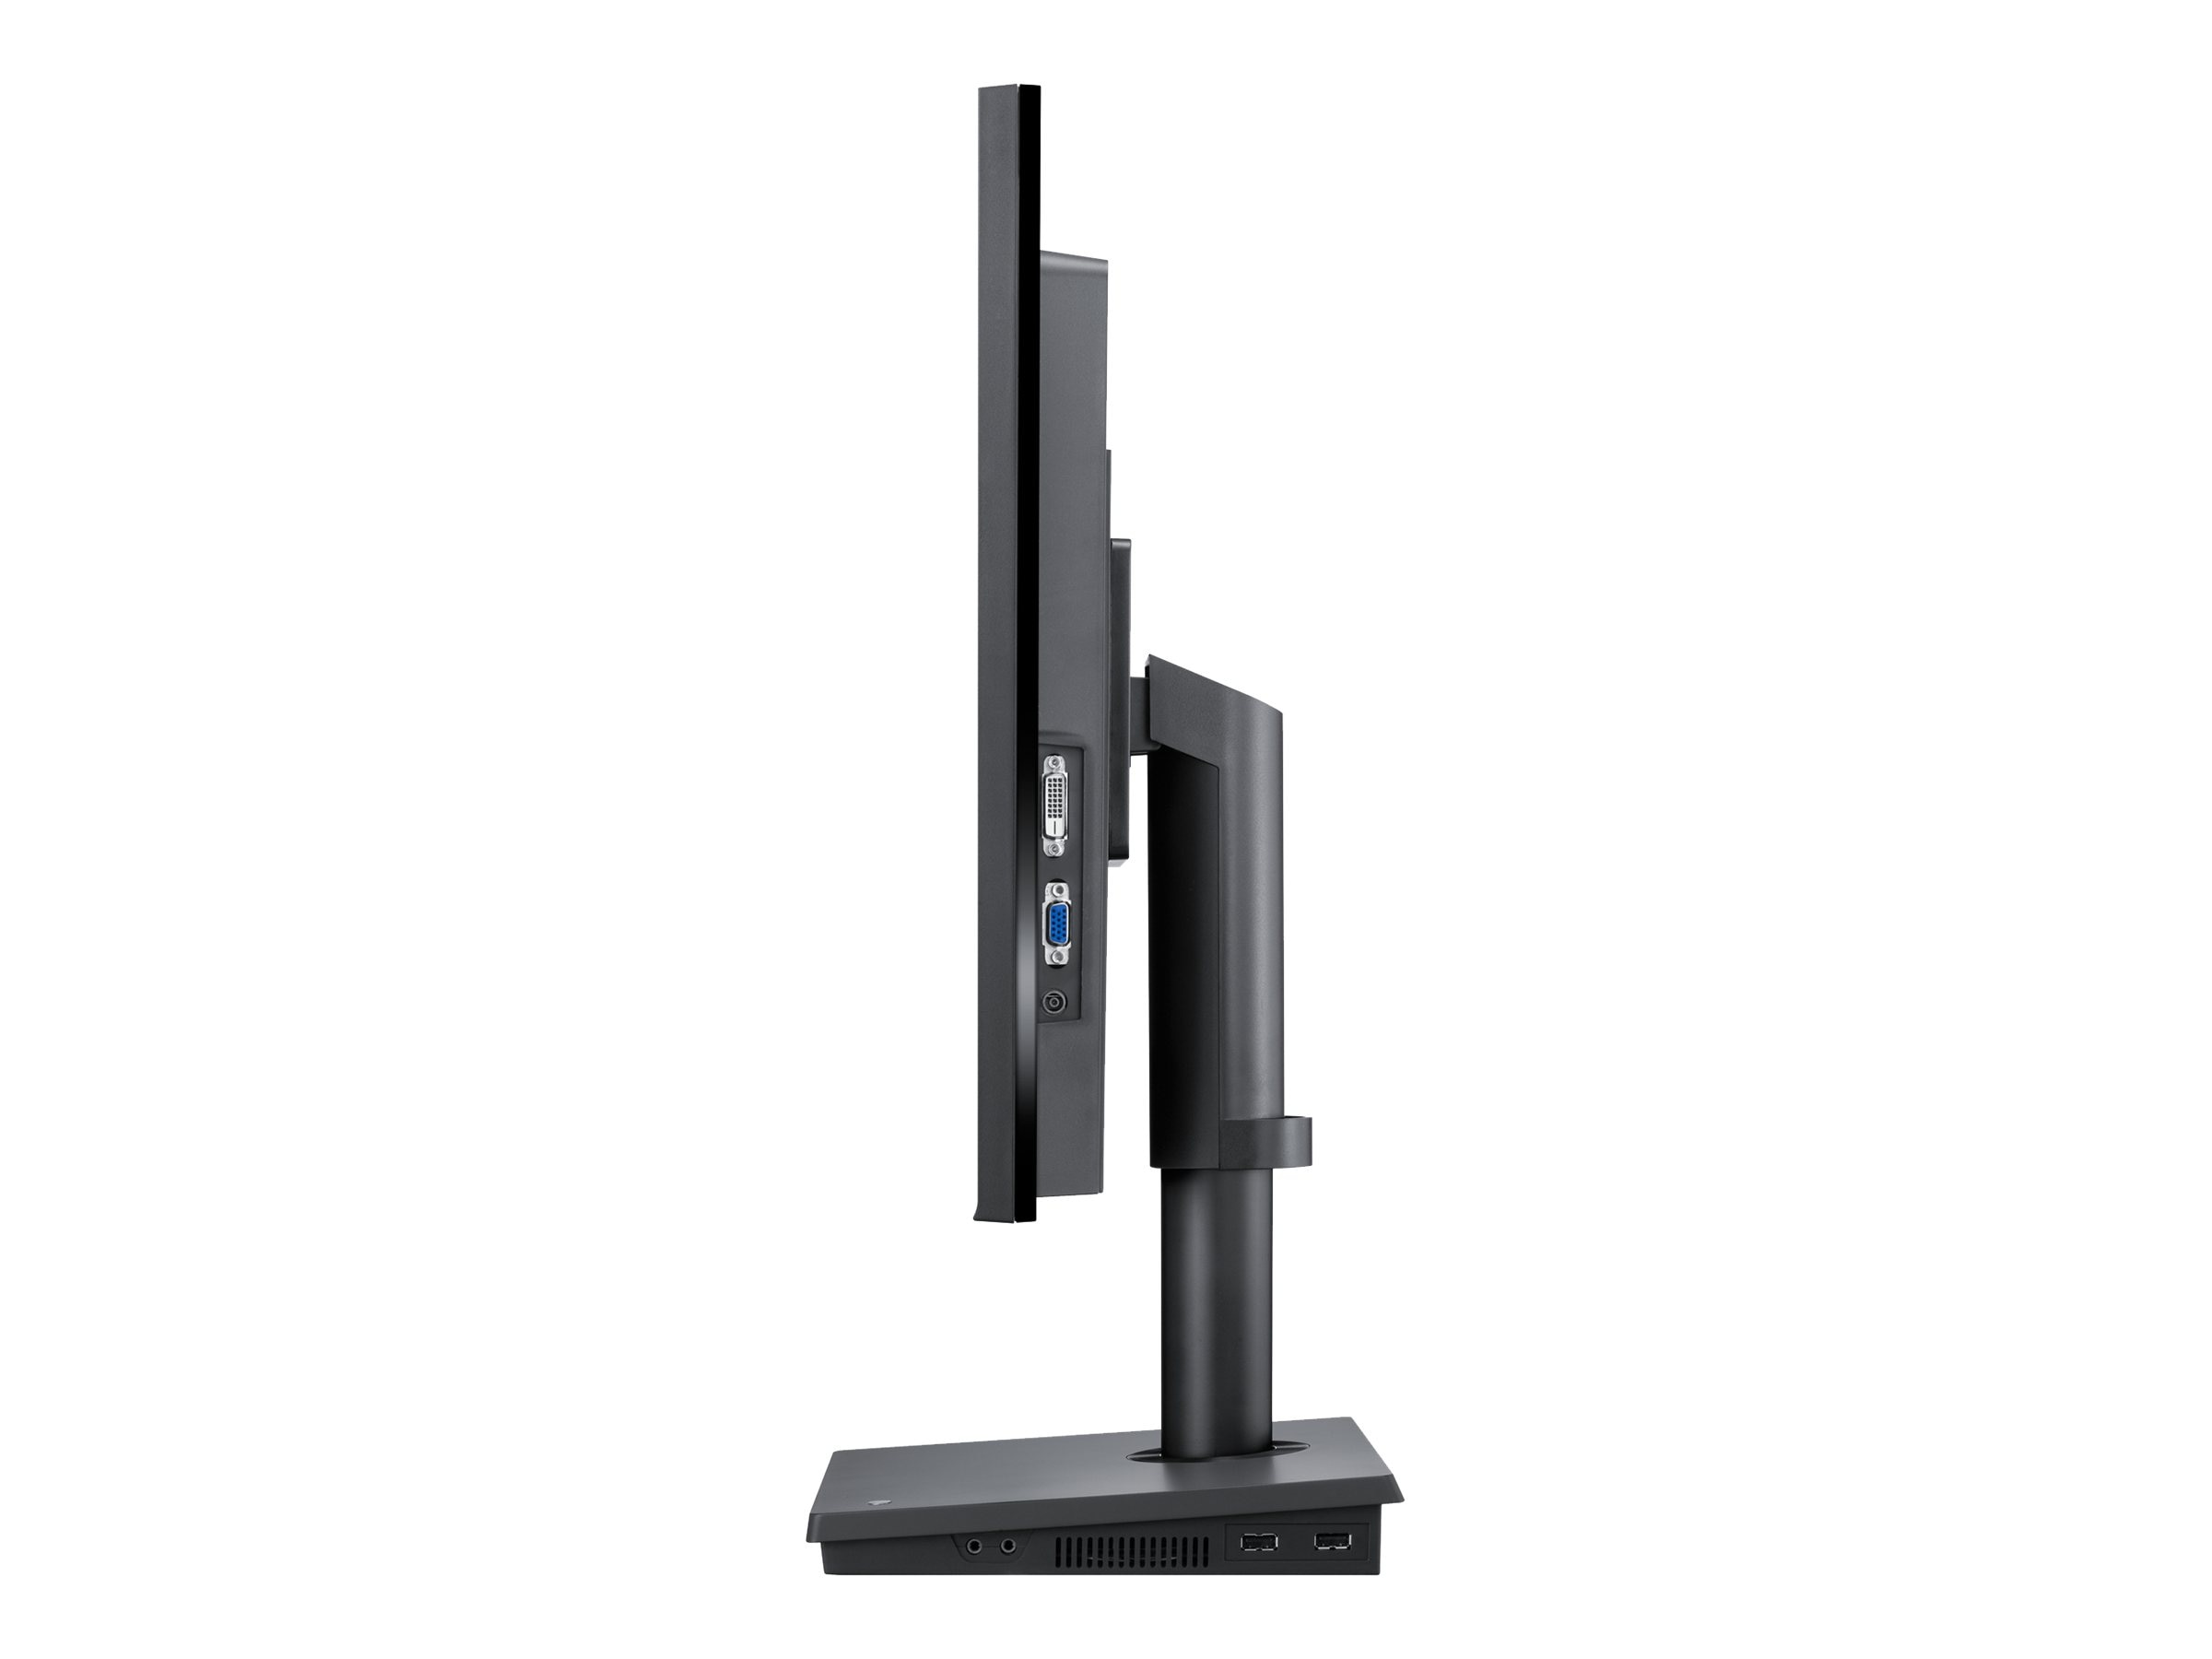 Samsung TS190W Thin Client Embedded Windows LED-LCD 19 Cloud Station AMD Ontario 1.0GHz 2GB 8GB SSD GigNIC, TS190W